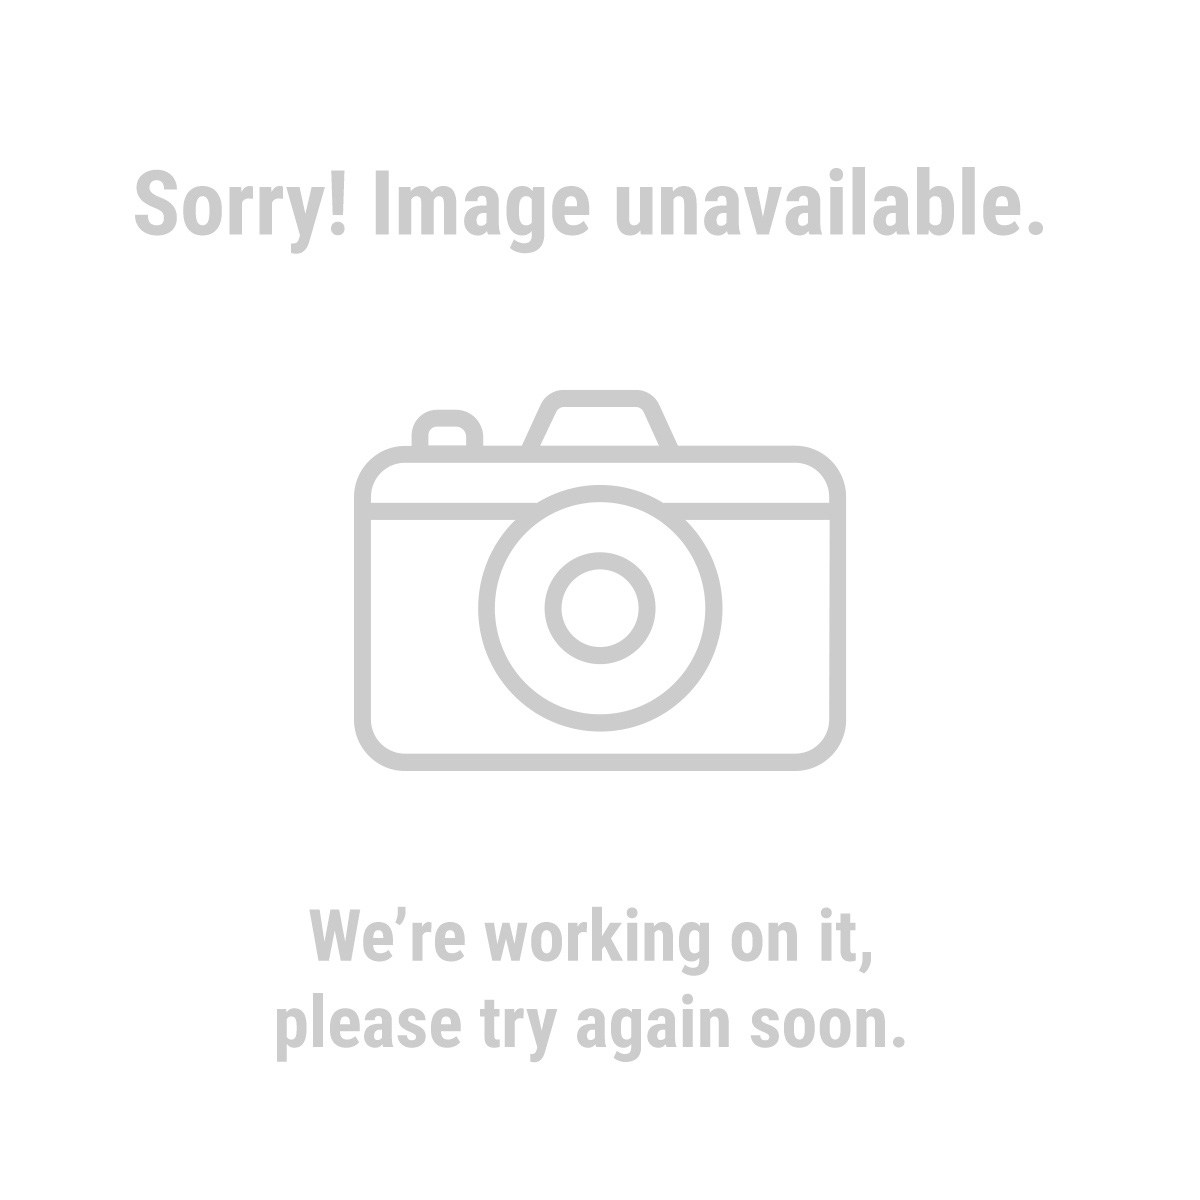 Grant's 63357 Microfiber Cleaning Cloths 12 Pk.